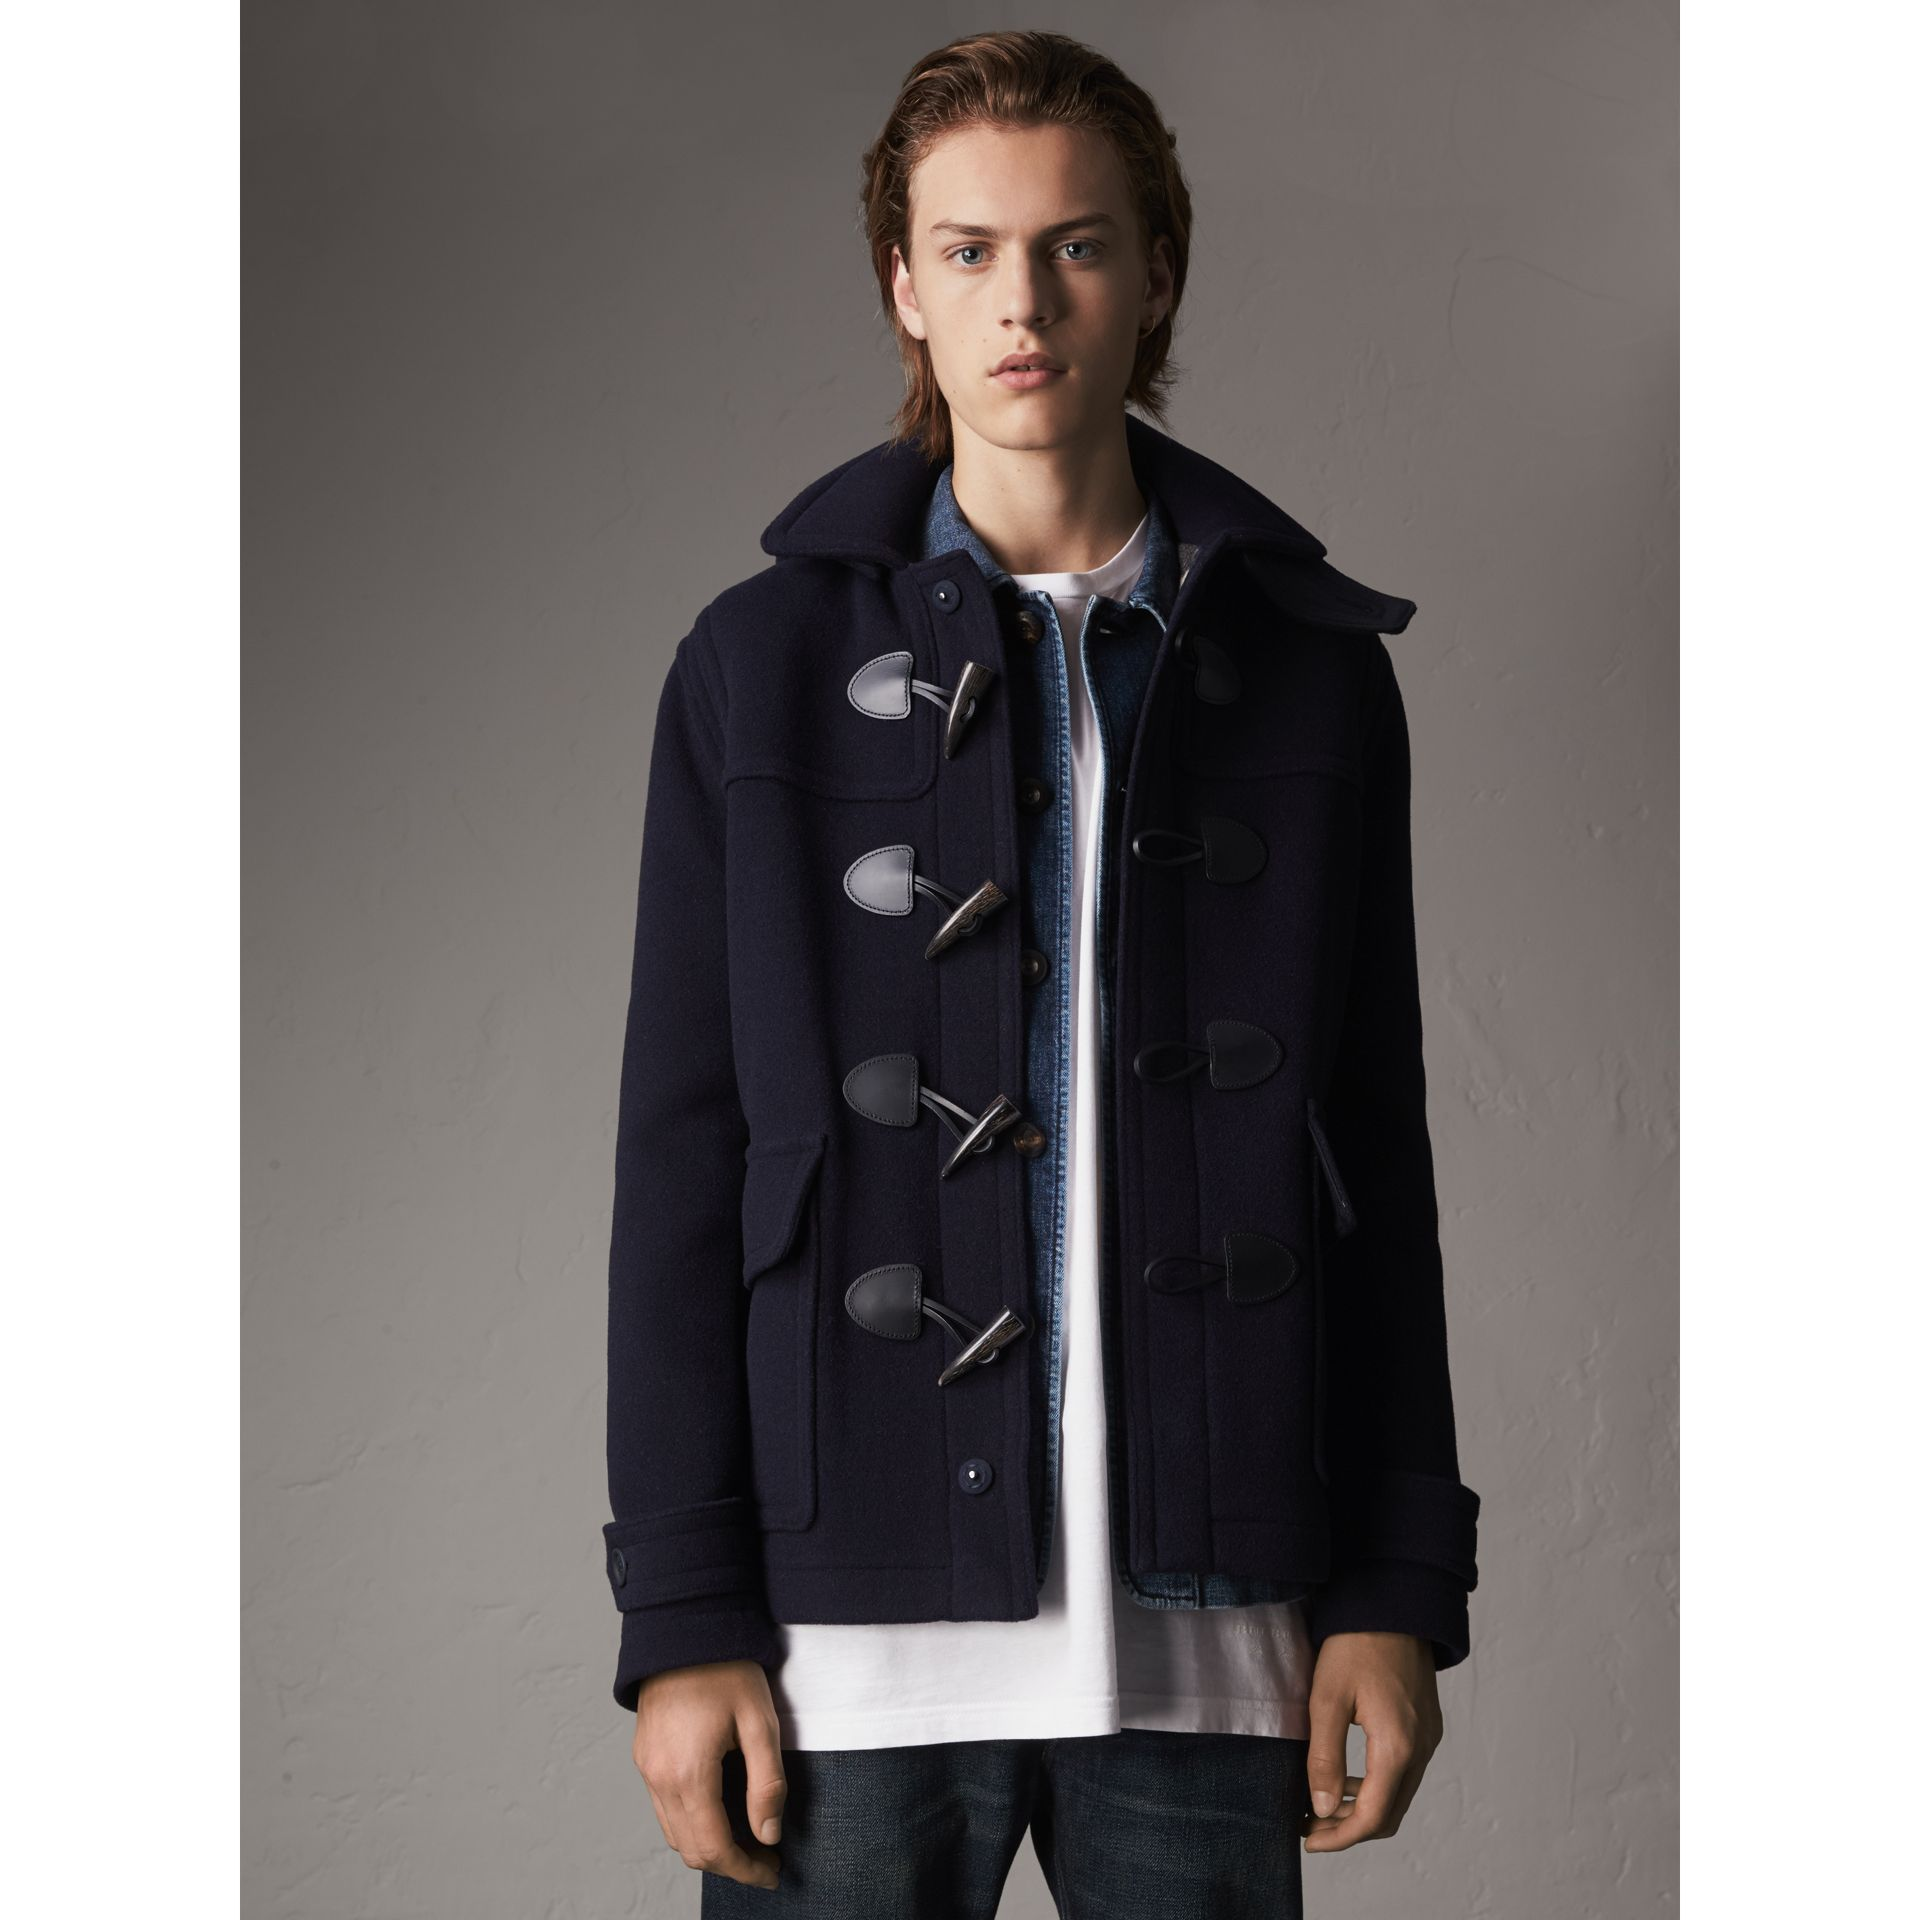 Wool Duffle Jacket with Detachable Hood in Navy - Men | Burberry - gallery image 1